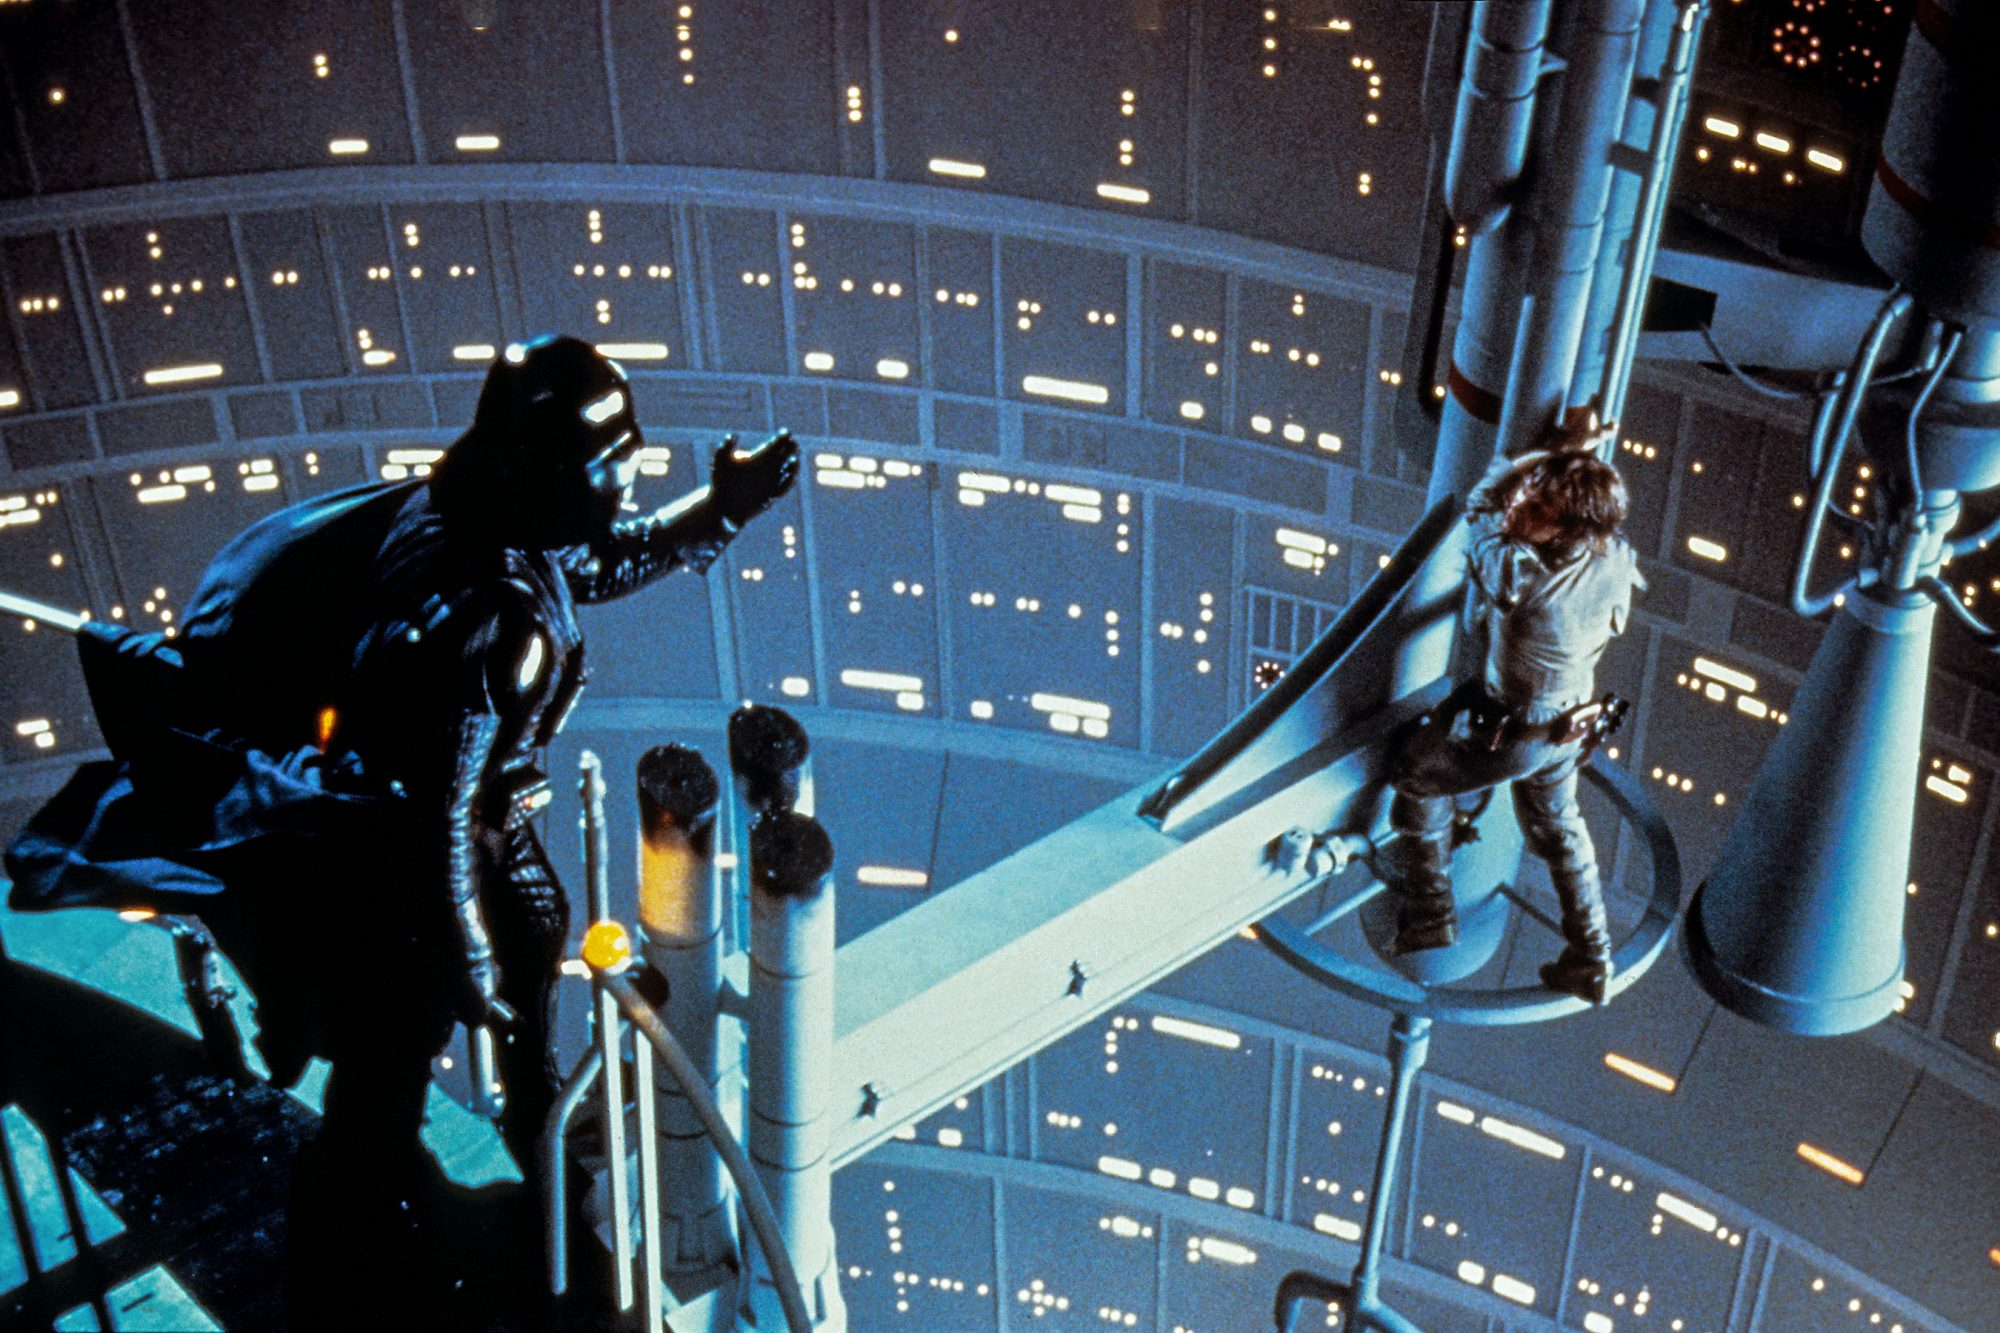 STAR WARS: EPISODE V - THE EMPIRE STRIKES BACK, from left, David Prowse, Mark Hamill, 1980